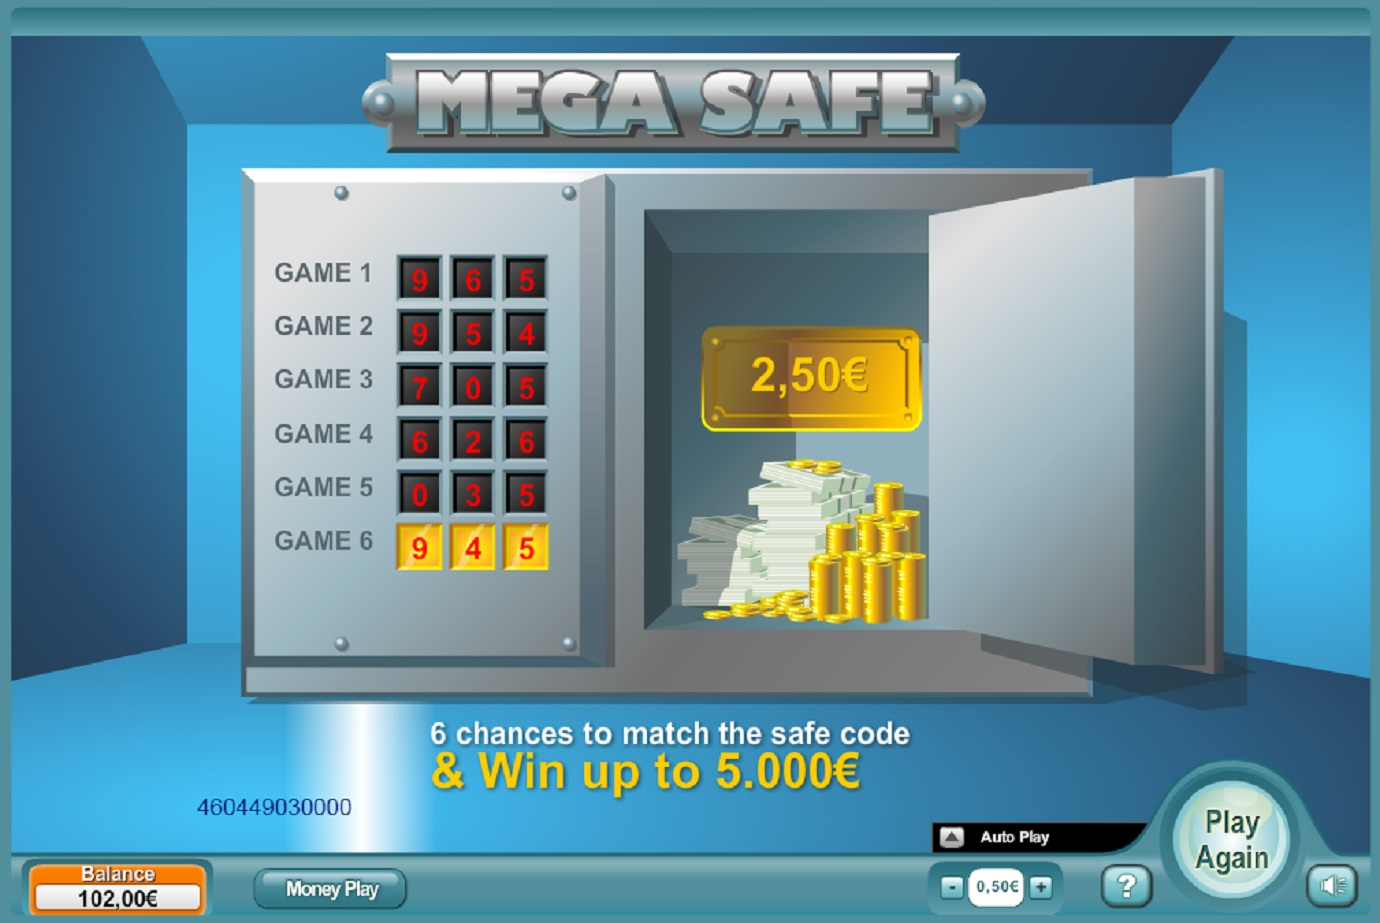 Is Mega Safe